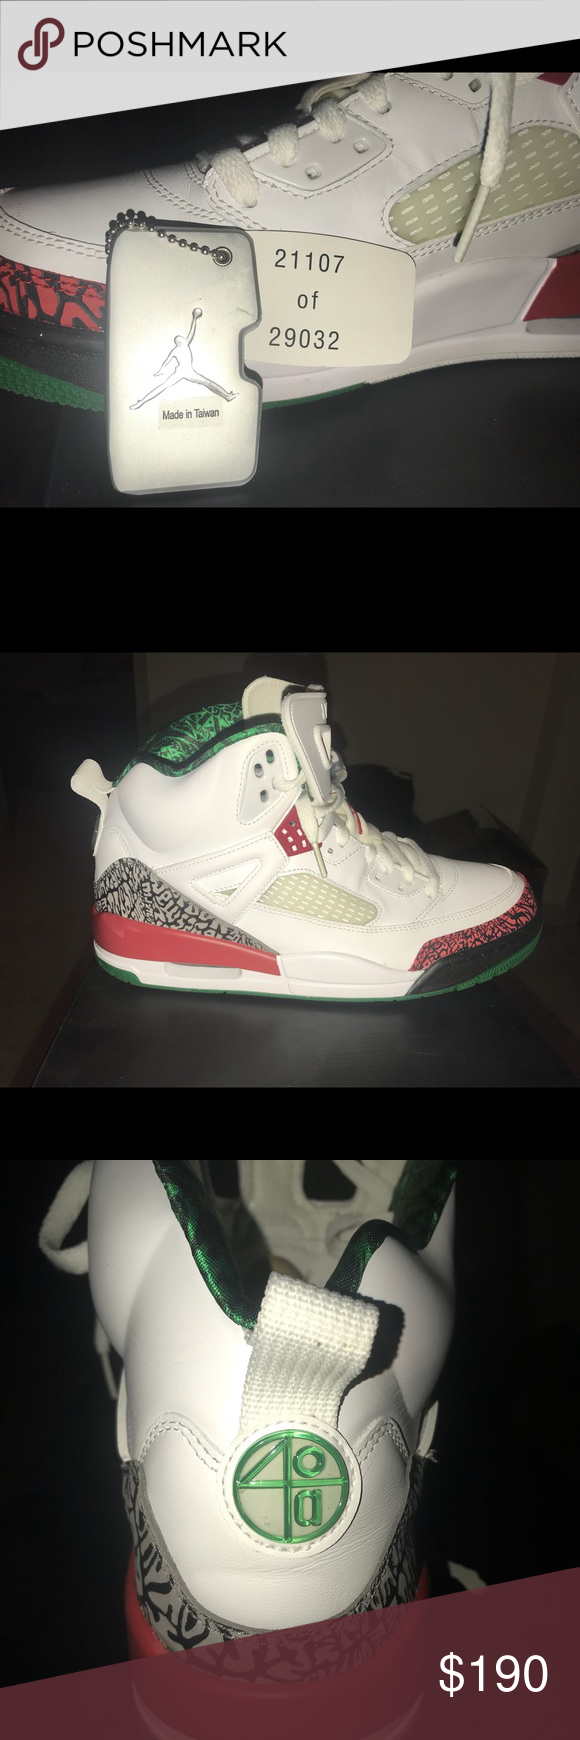 online store be4c2 8367b Air Jordan Spizike Collectors items. Won t last long! White varsity red  cement grey Size 10.5 Original box and tag Jordan Shoes Sneakers